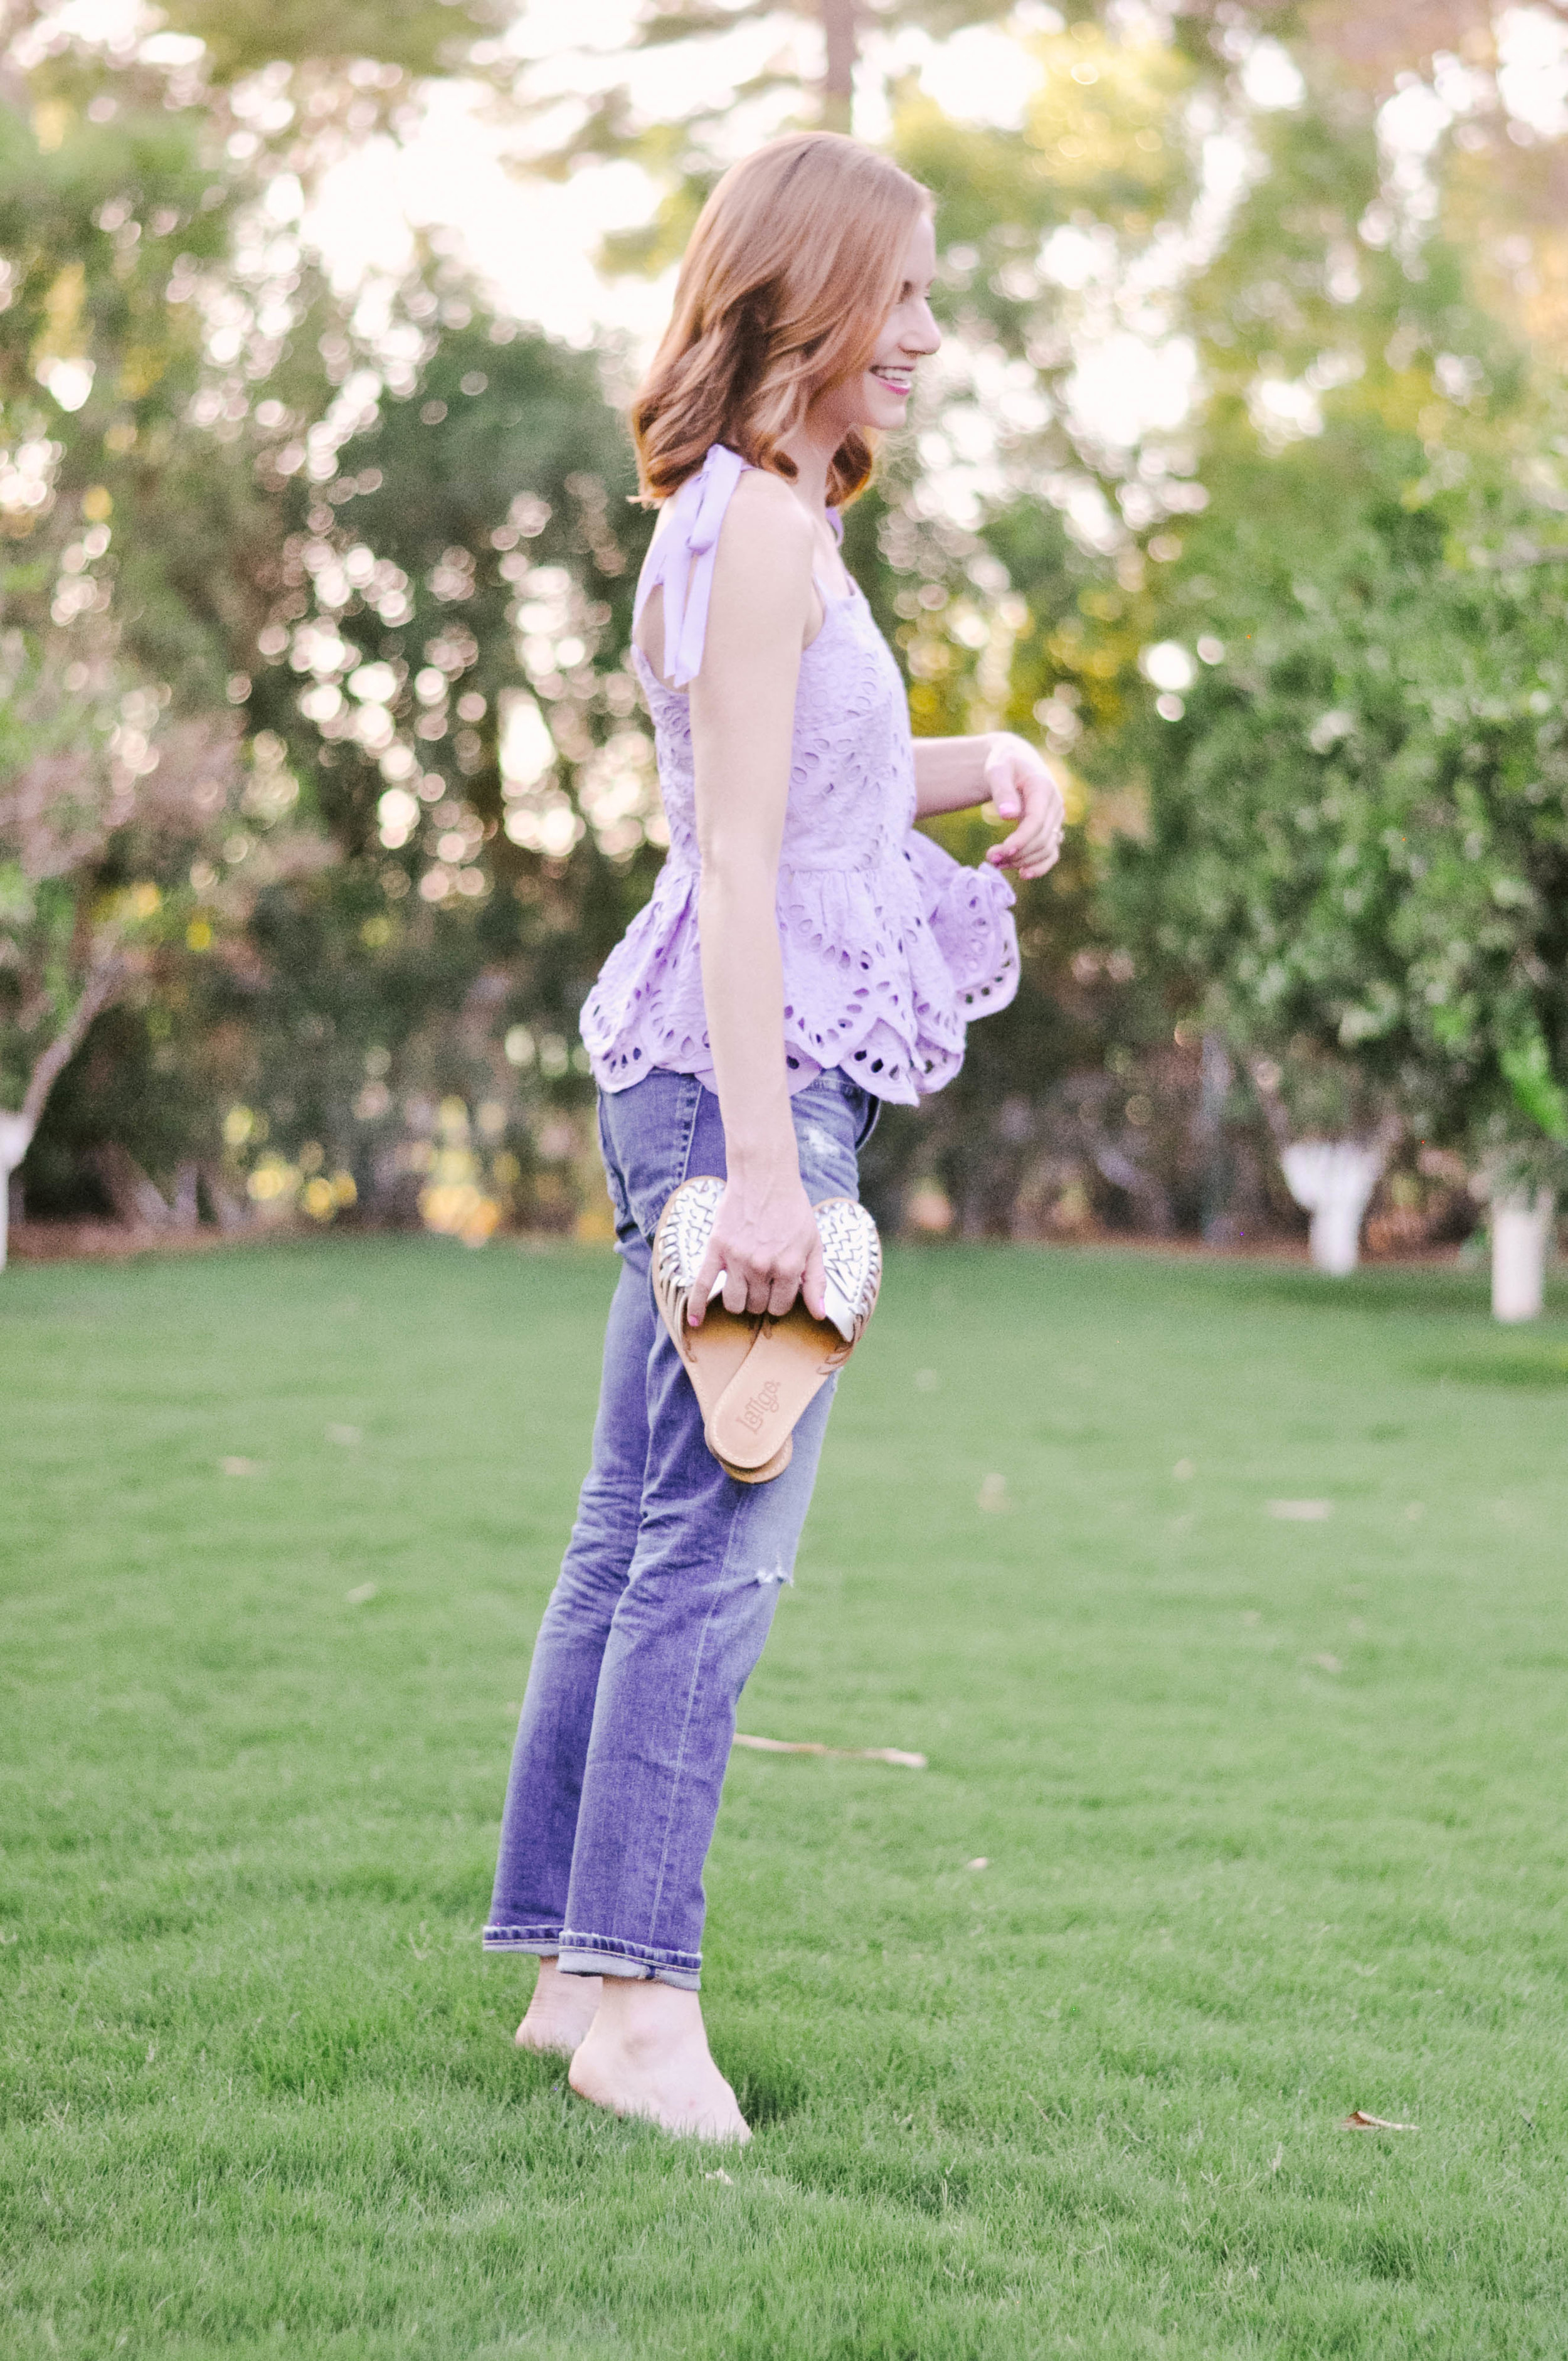 Girl with red hair standing in a field in a lavender J.Crew top and AG boyfriend jeans